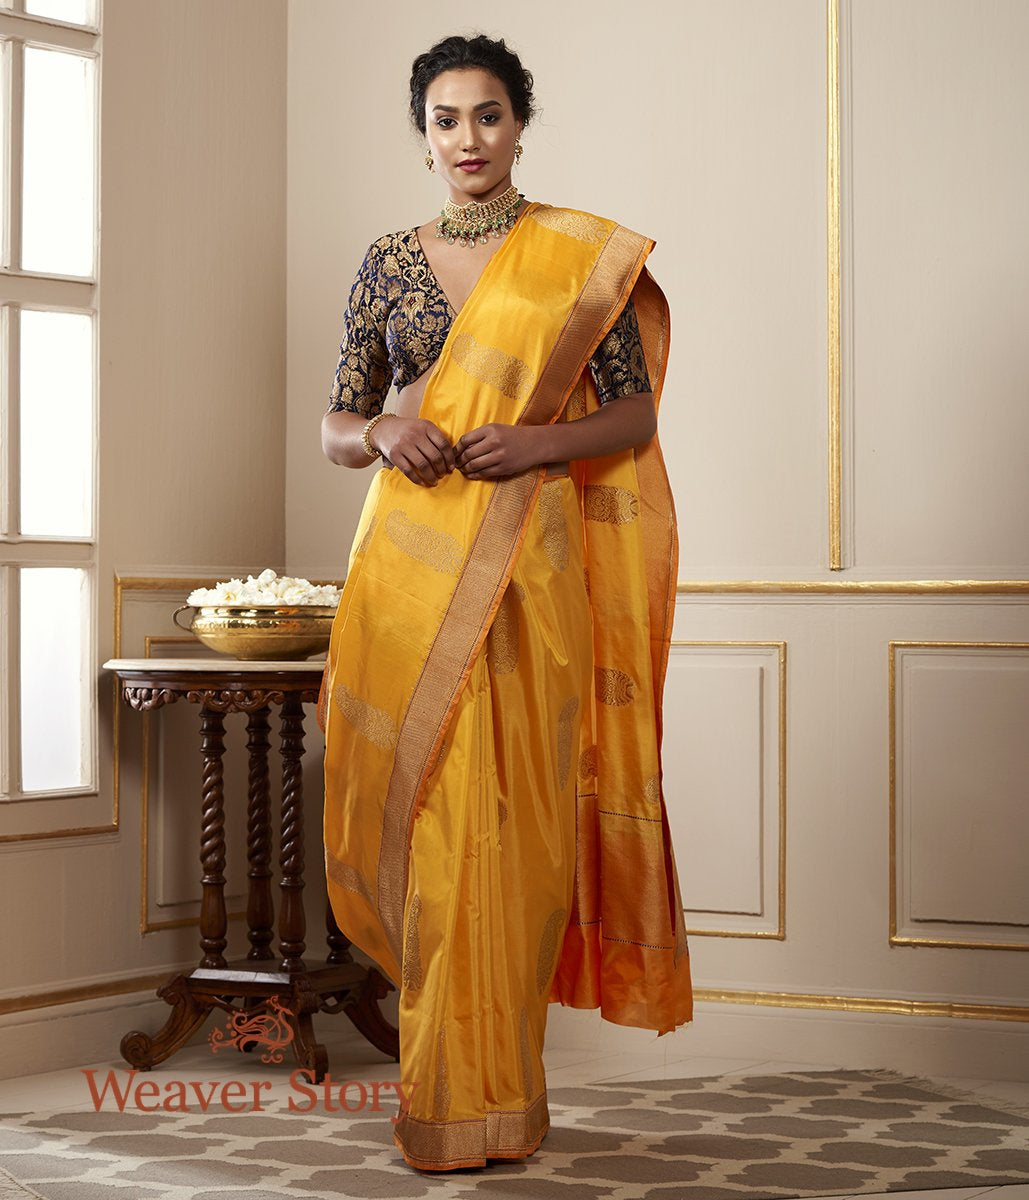 Handwoven Mango Yellow Banarasi with Kairi Motifs